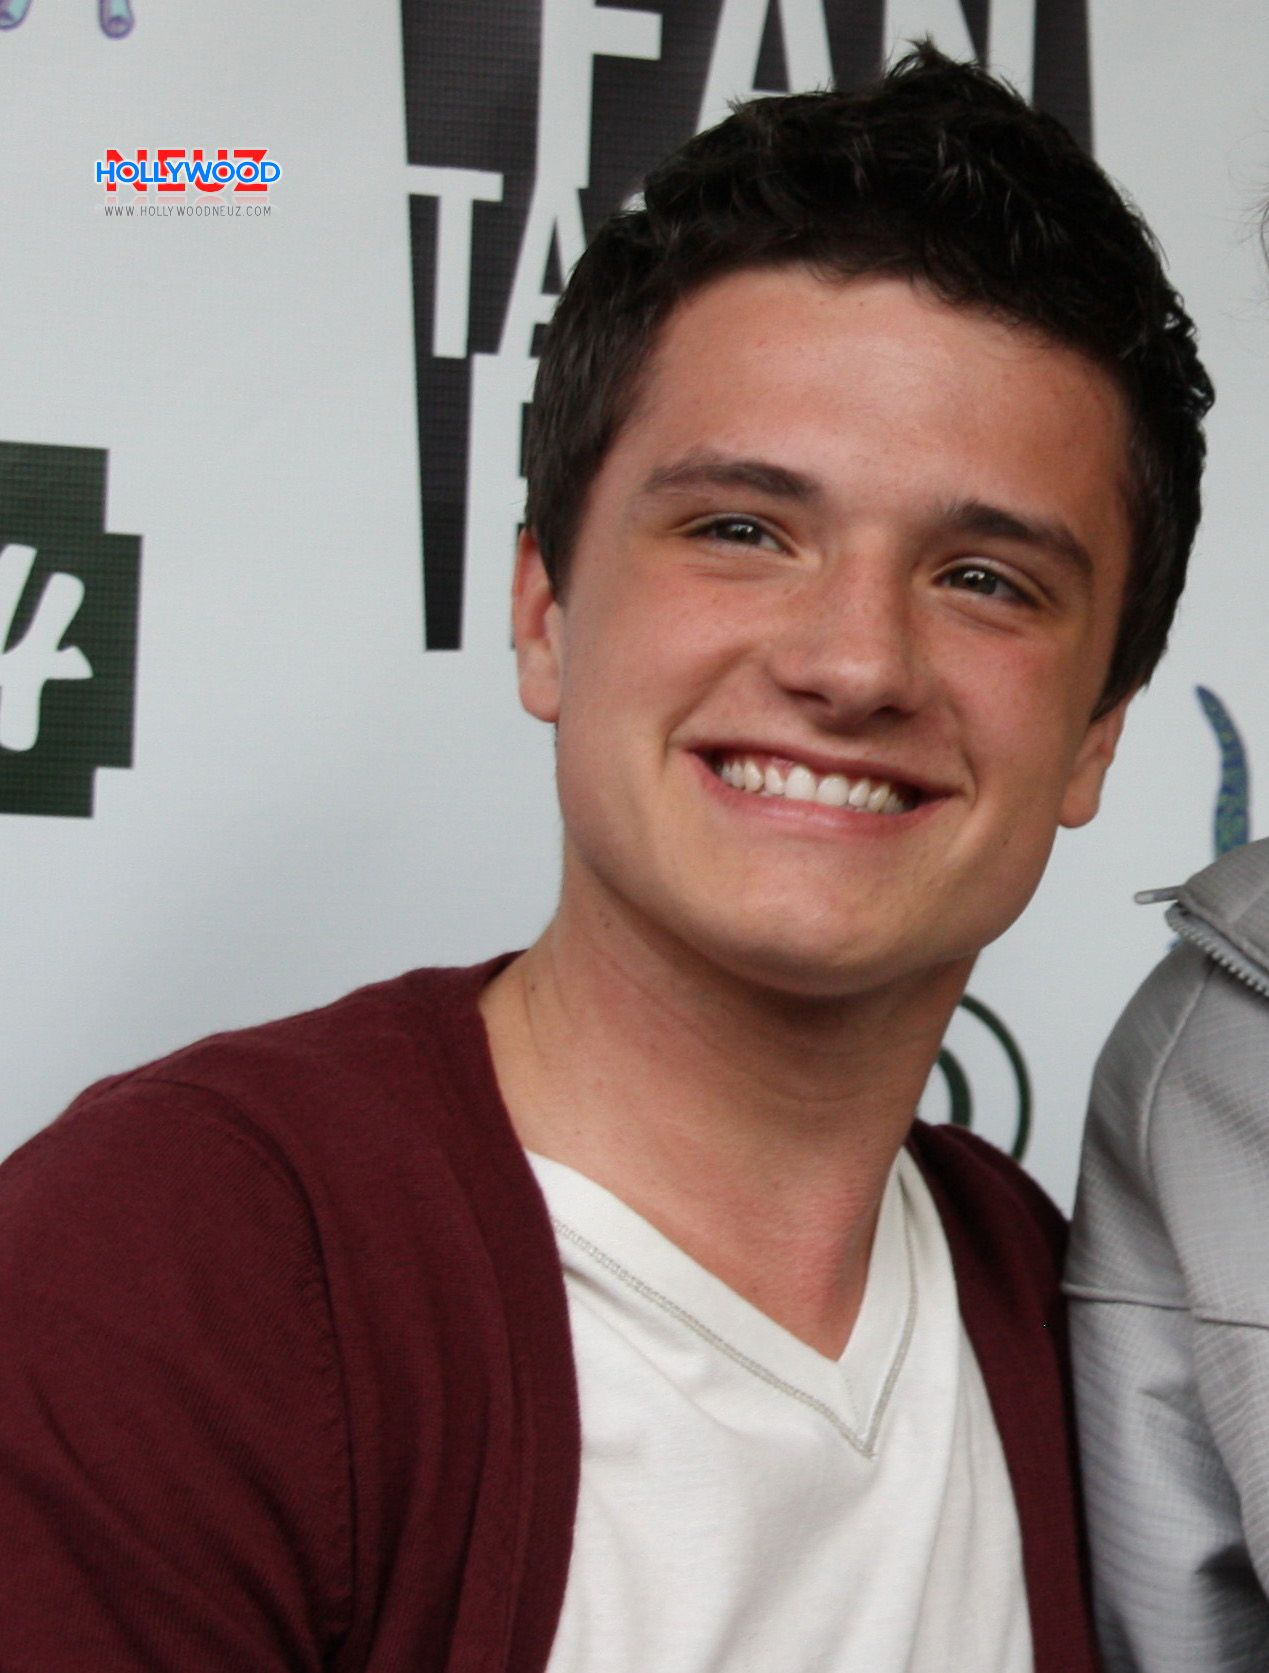 Josh Hutcherson: his films, photos, biography and details of his personal life 7